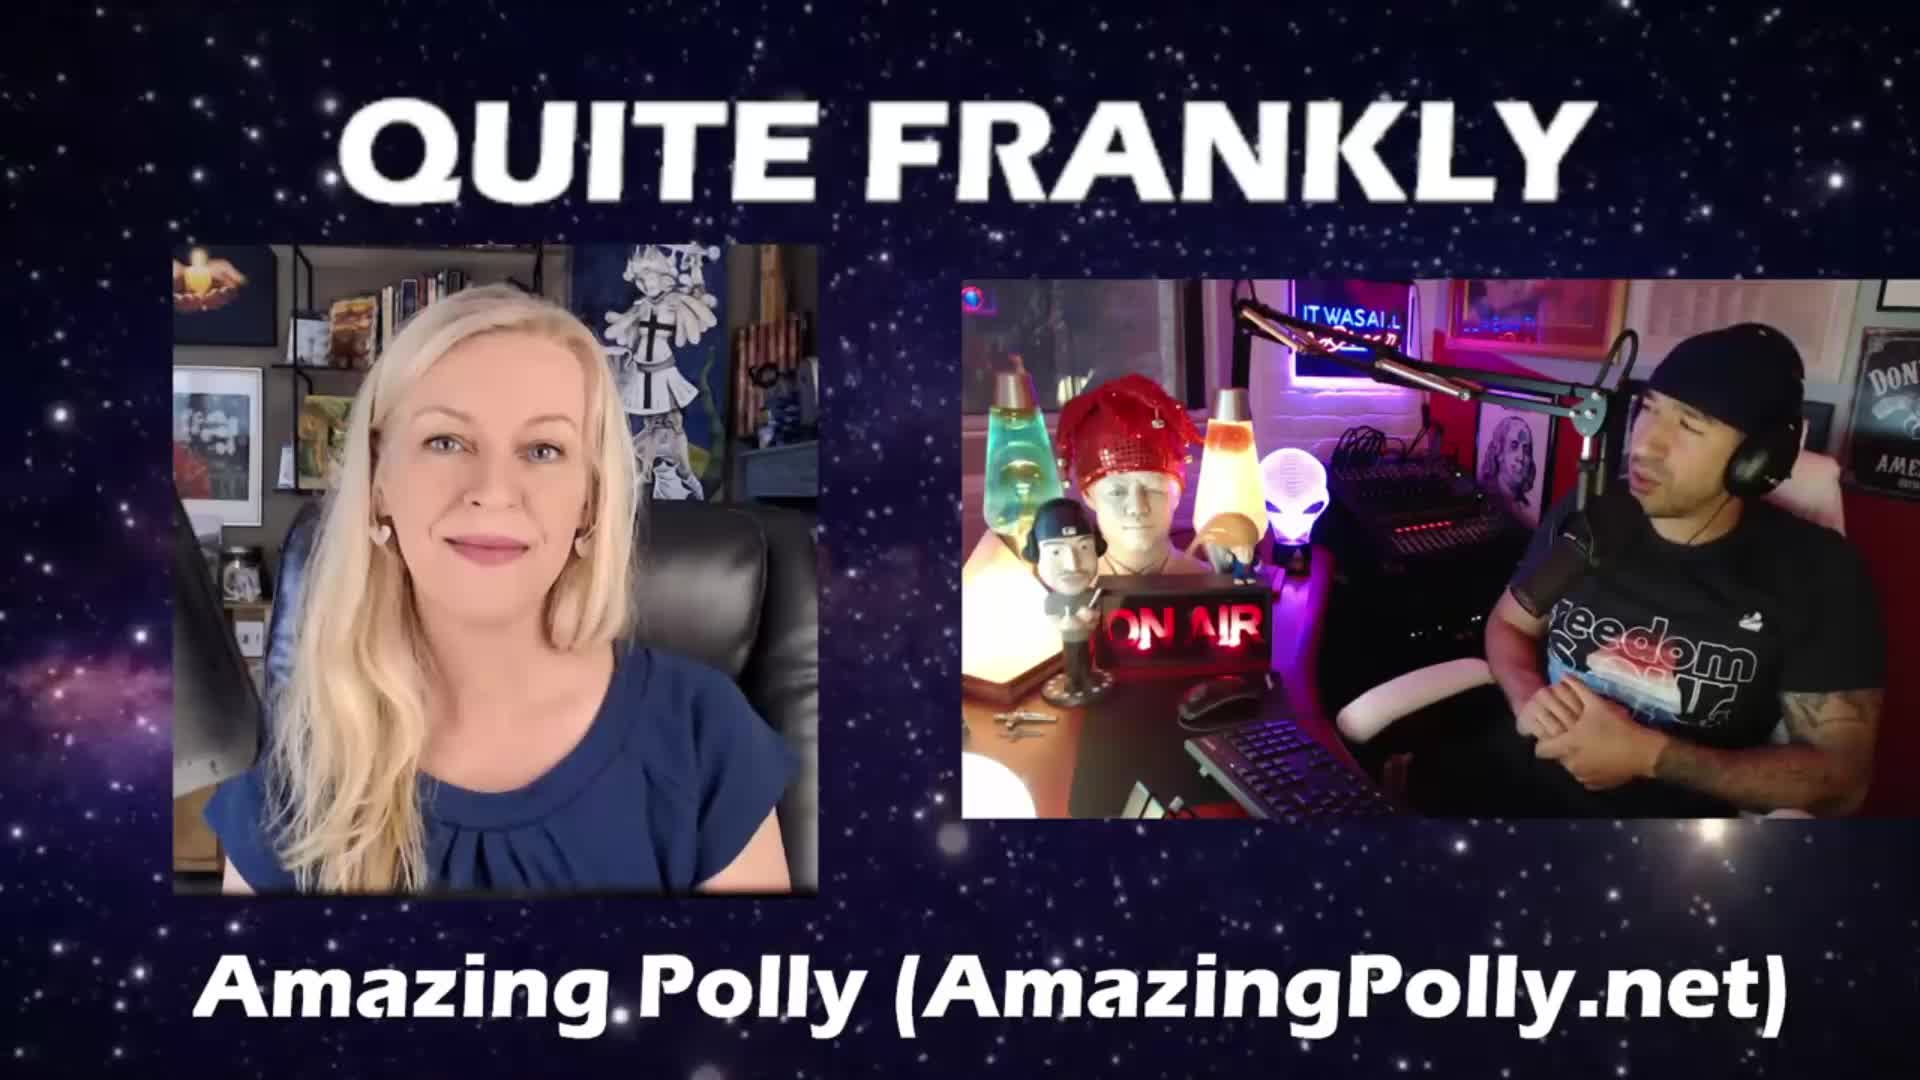 Amazing Polly on Quite Frankly Aug 4th 2021 6-8-2021